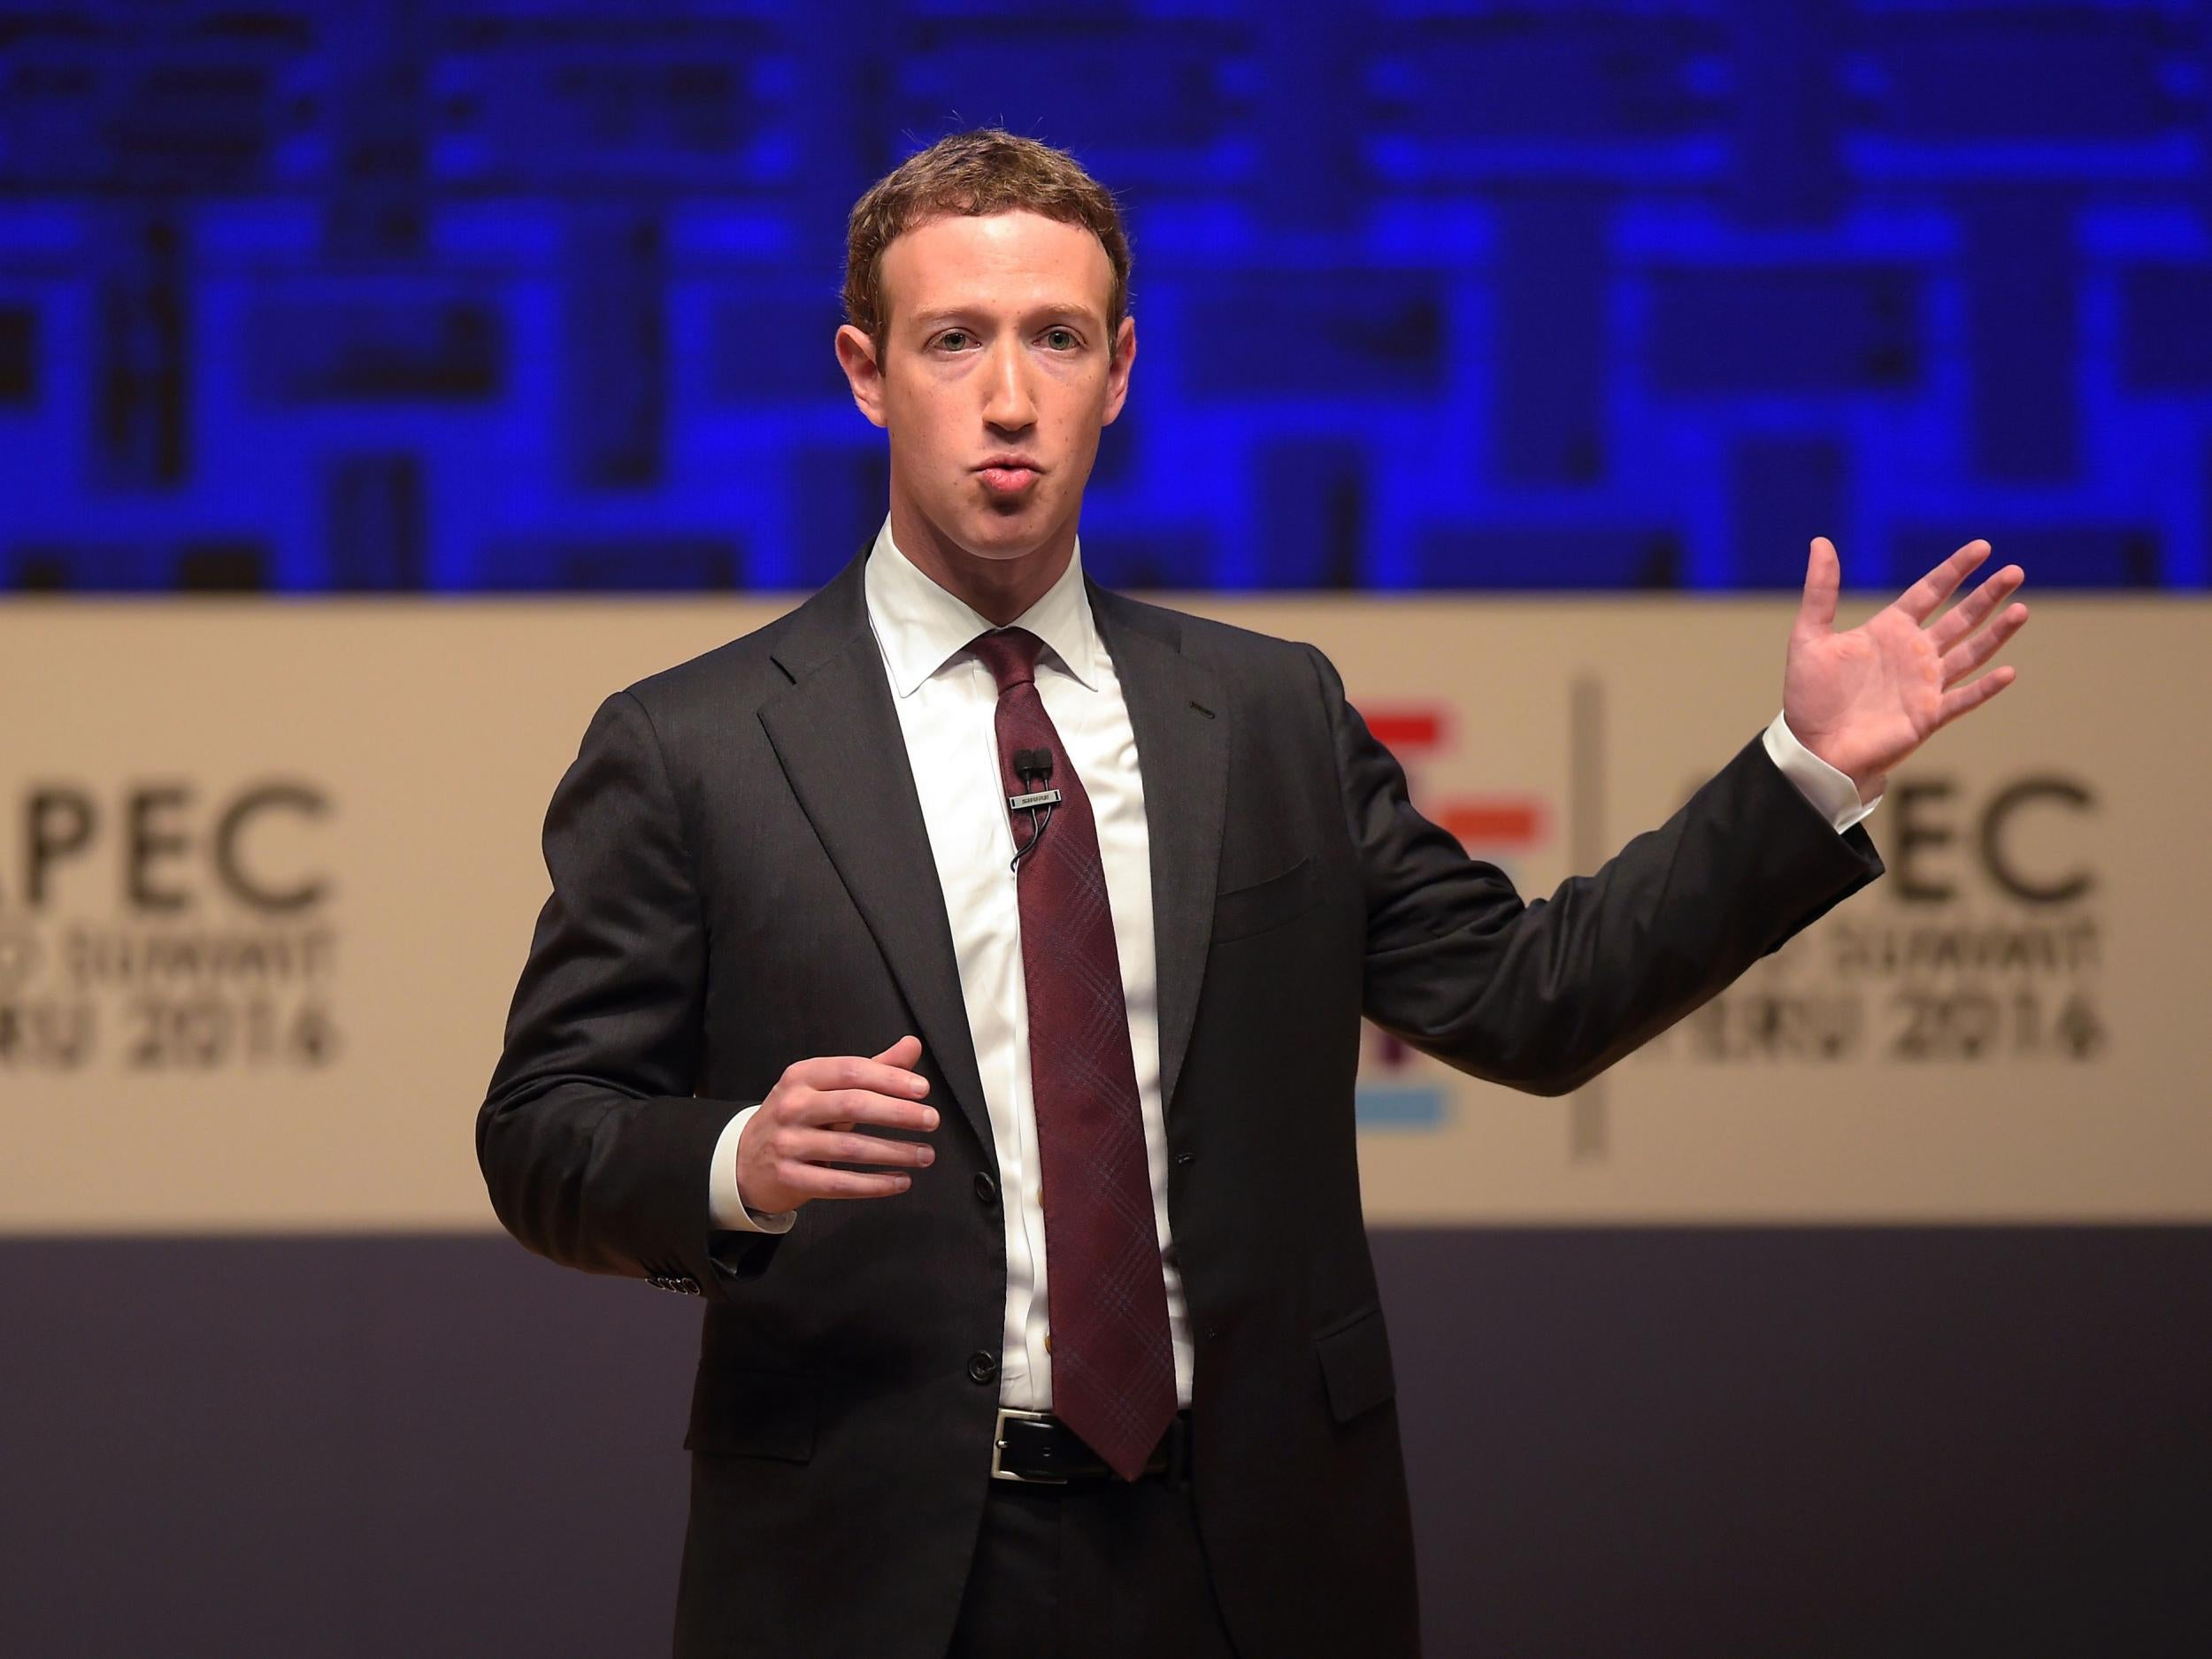 Facebook is developing tools to read through people's private messages, Mark Zuckerberg manifesto suggests